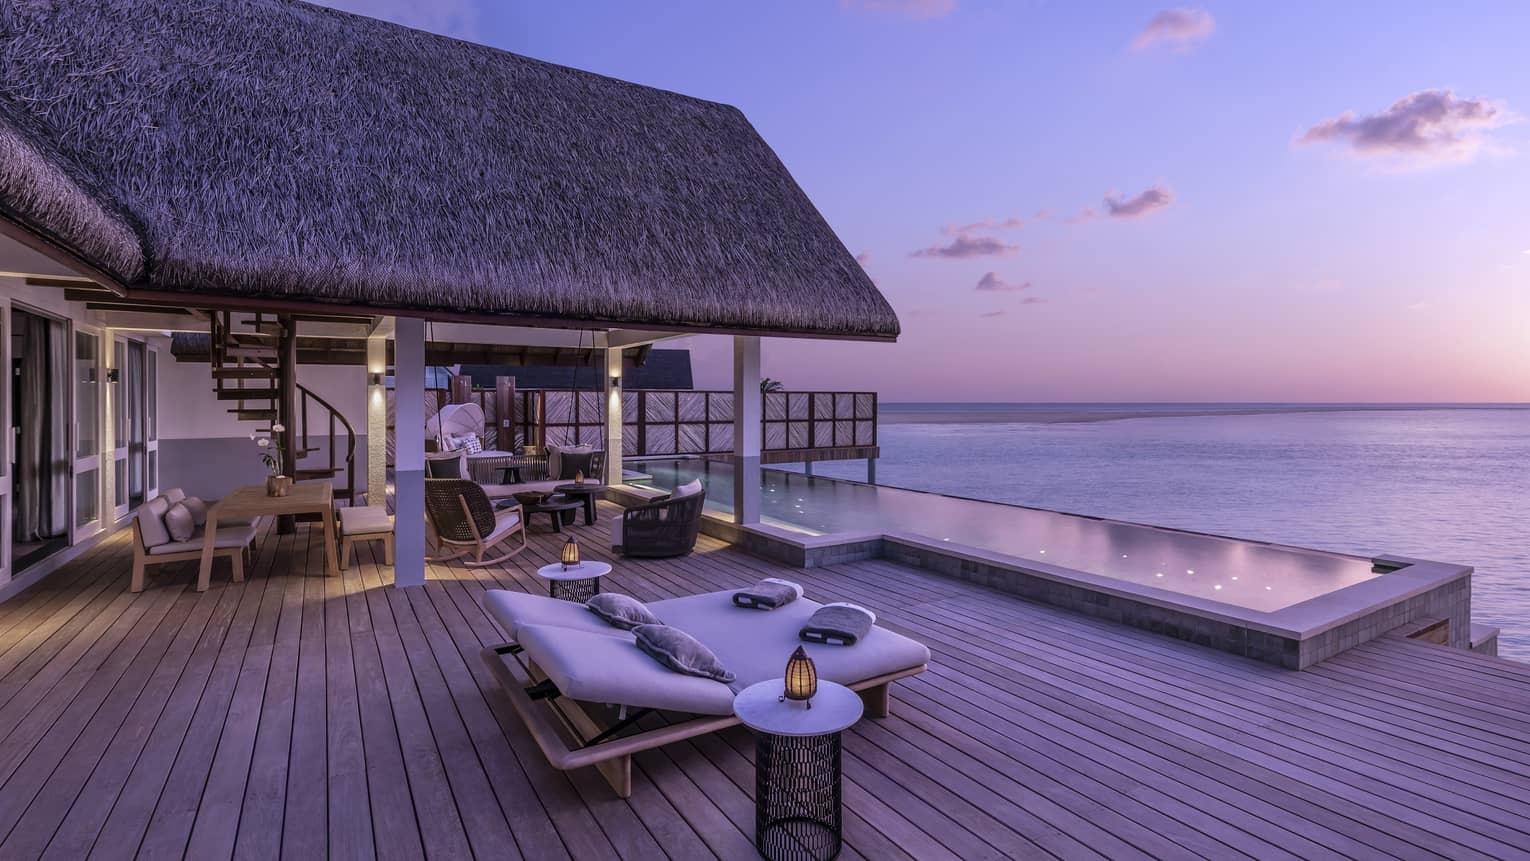 Luxurious overwater bungalow with an expansive wooden deck and infinity pool